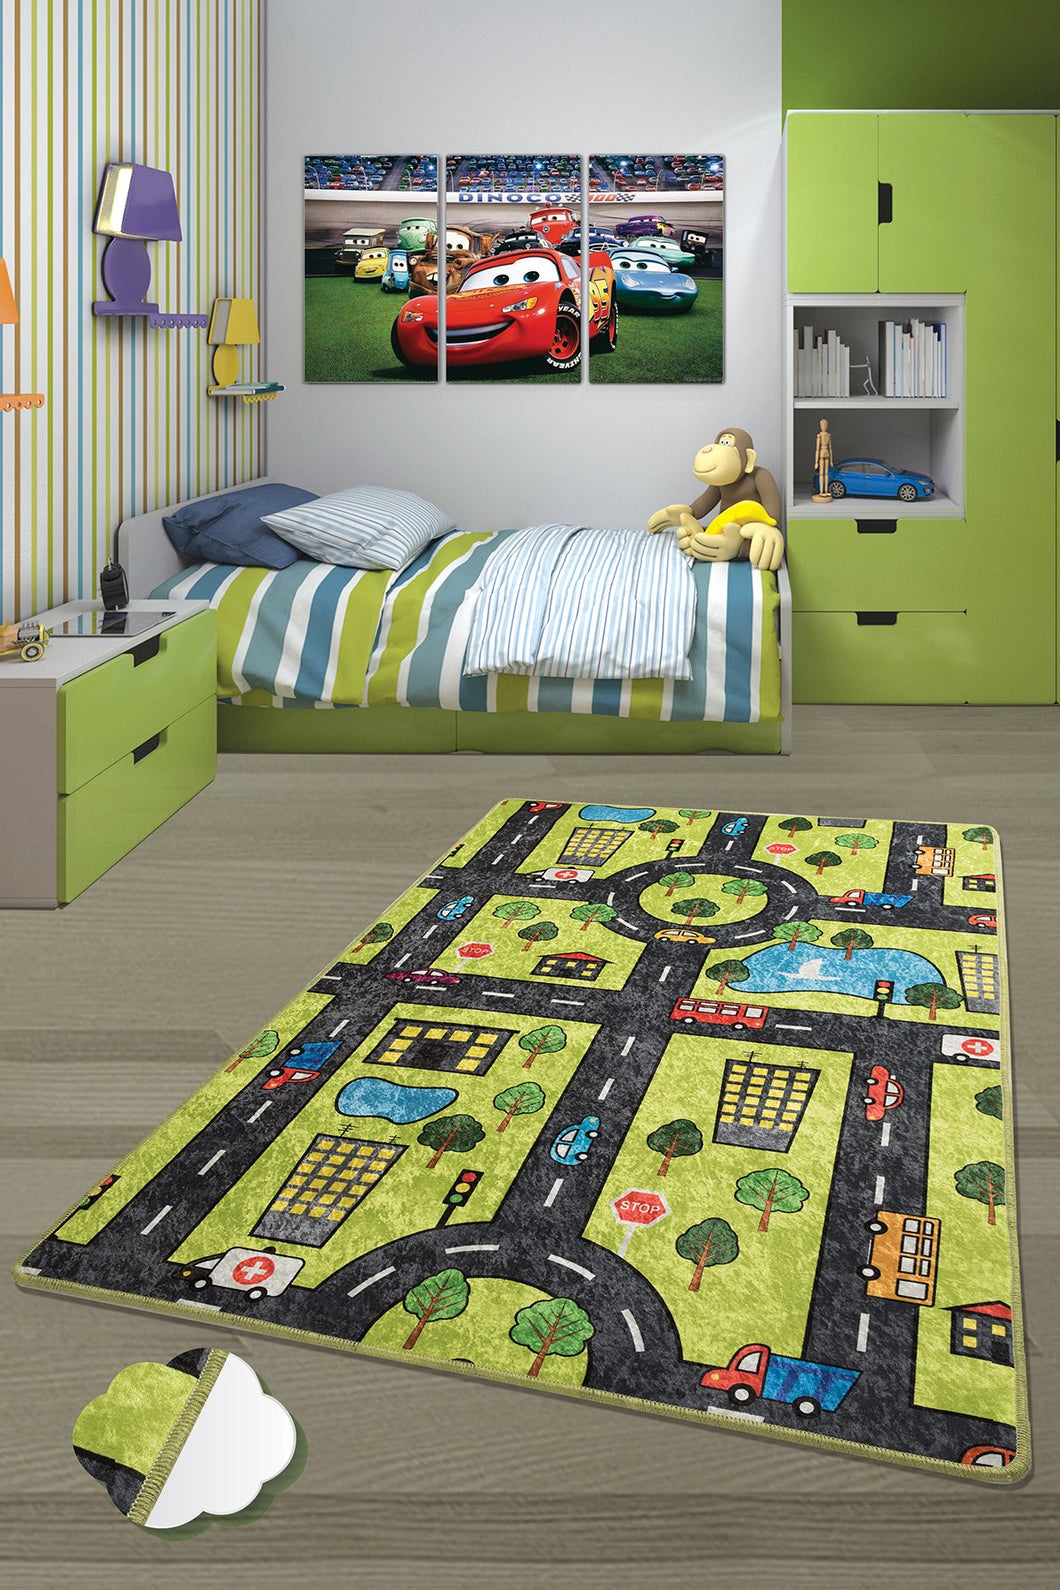 Antdecor Green City Rugs for kids Highway  3'x 5' 39